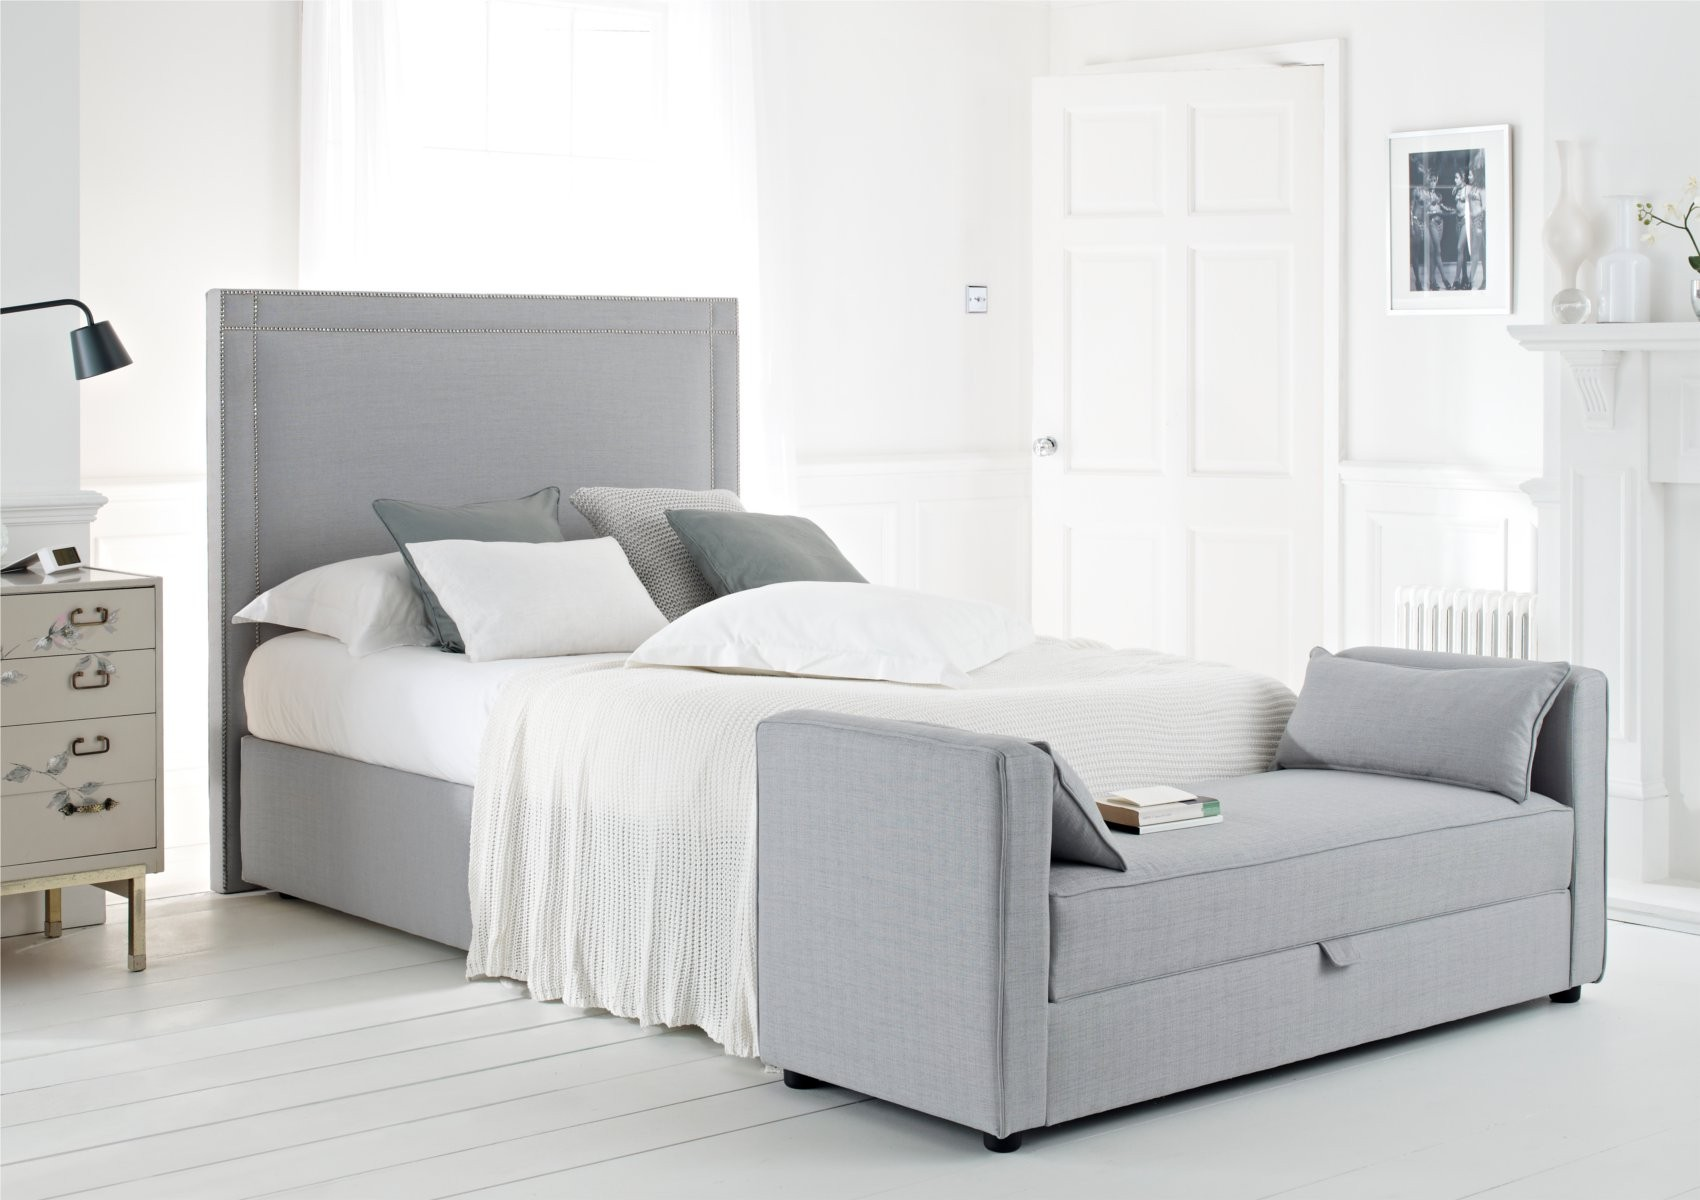 cheap sofa sets singapore new sale end of bed benches: extra storage and beauty | homesfeed